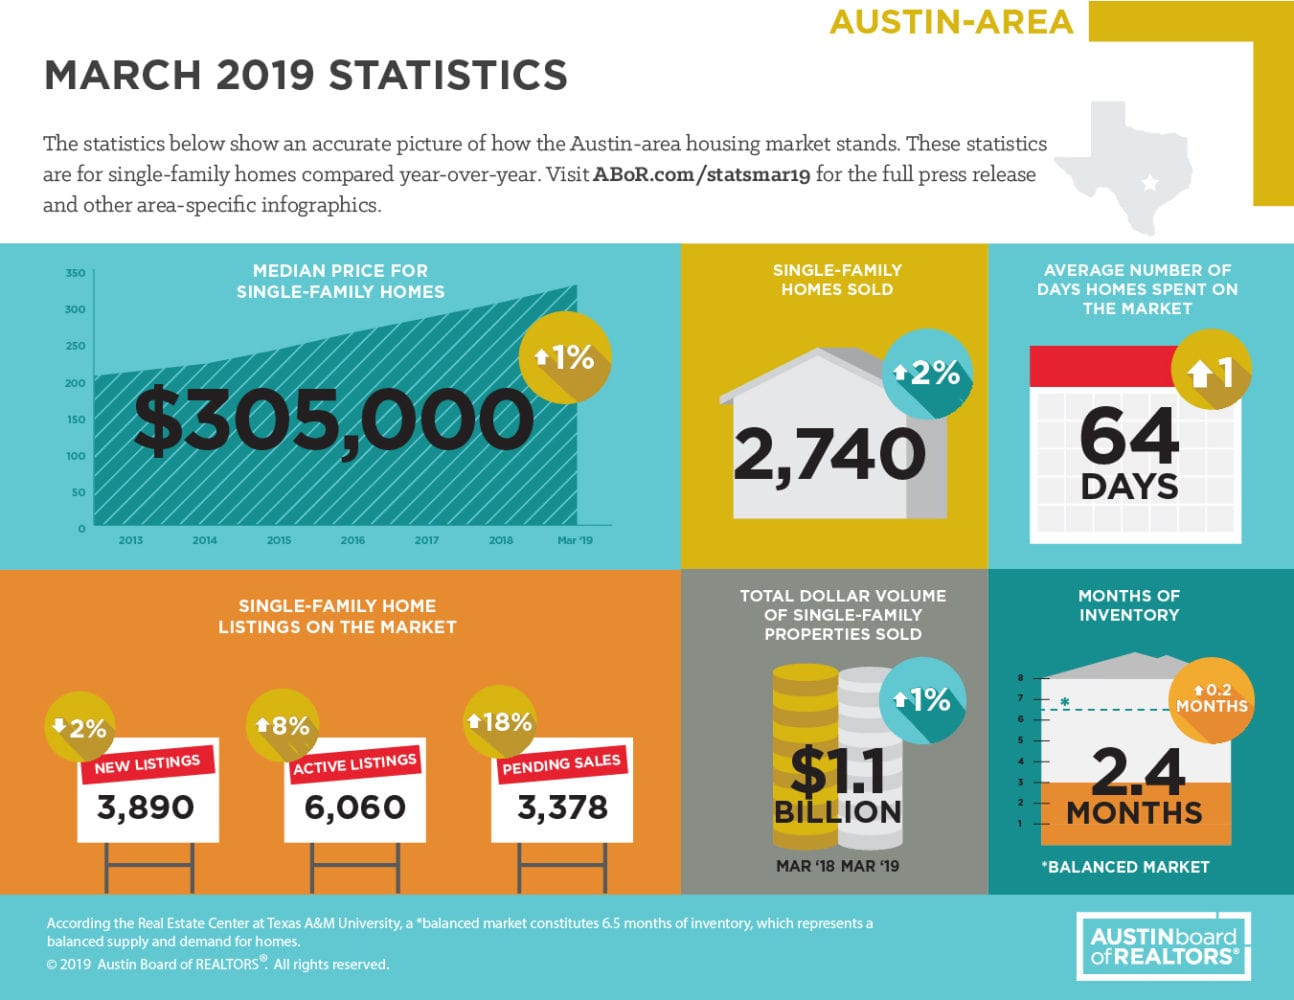 March 2019 ABOR Market Statistics